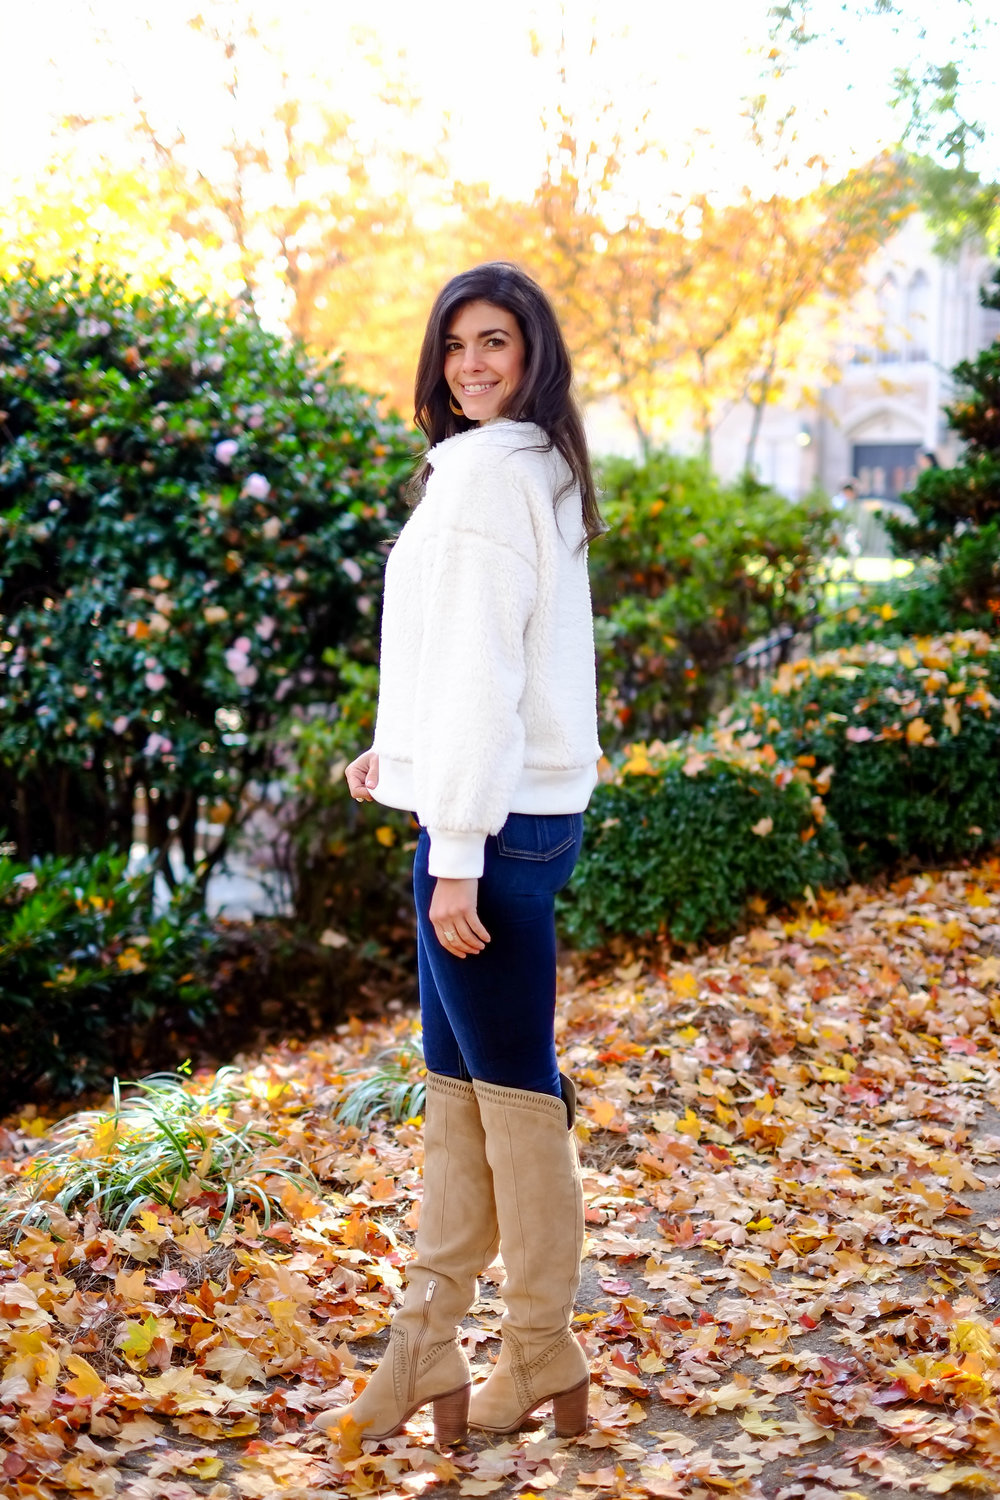 snuggly-sweater-jeans-otk-boots-thanksgiving-weekend-outfit-inspiration-Lauren-schwaiger.jpg